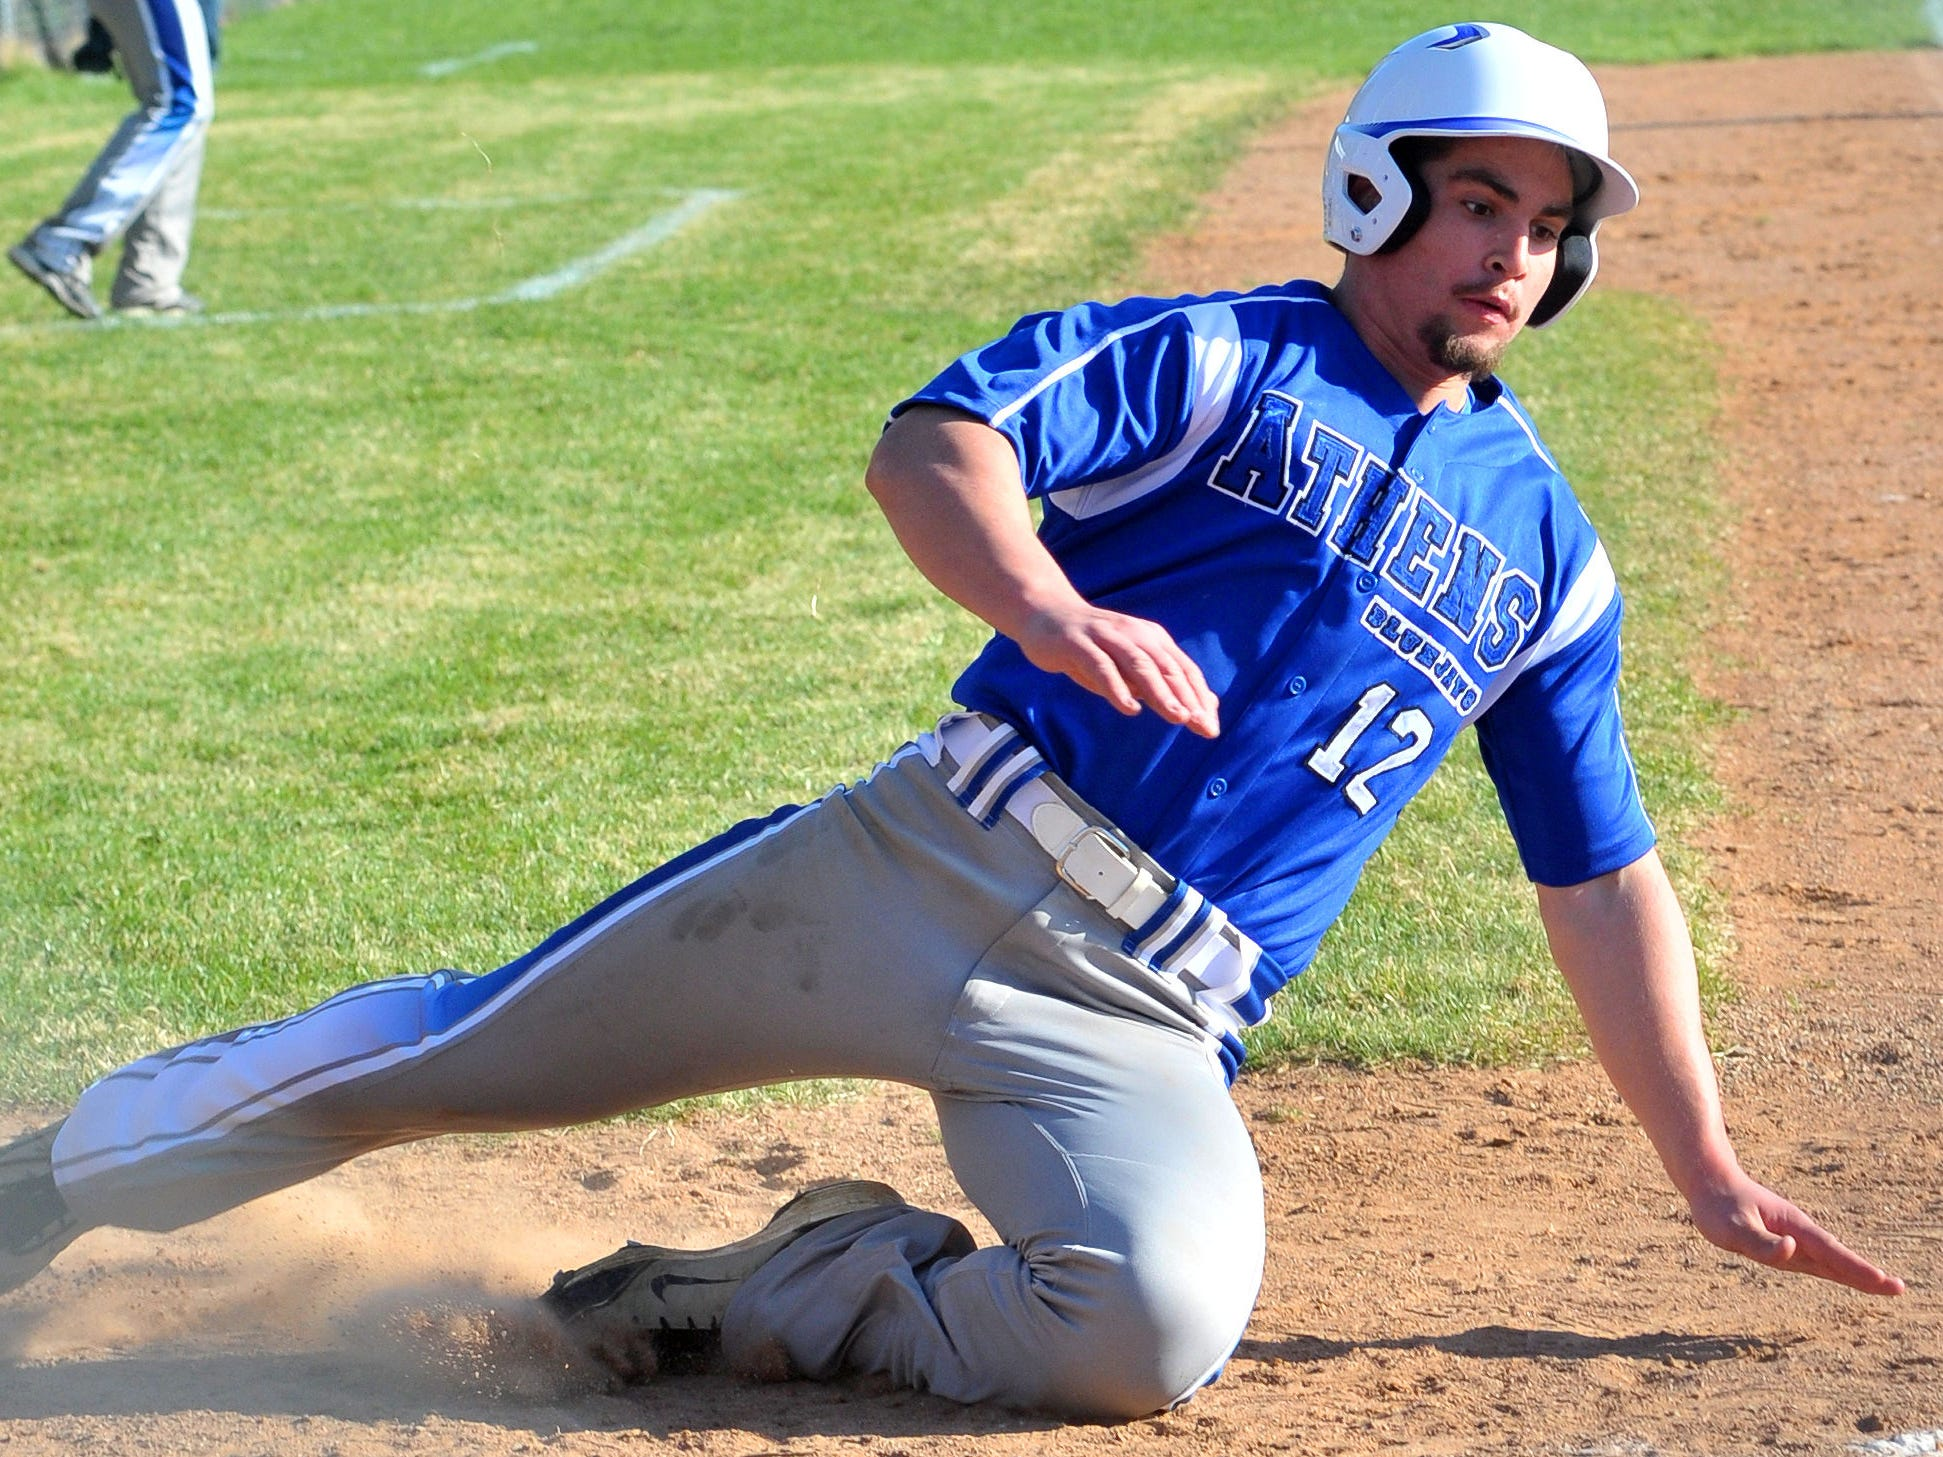 Athens' Lane Tessmer slides into home with the Bluejays second run of the third inning against Marathon Thursday.